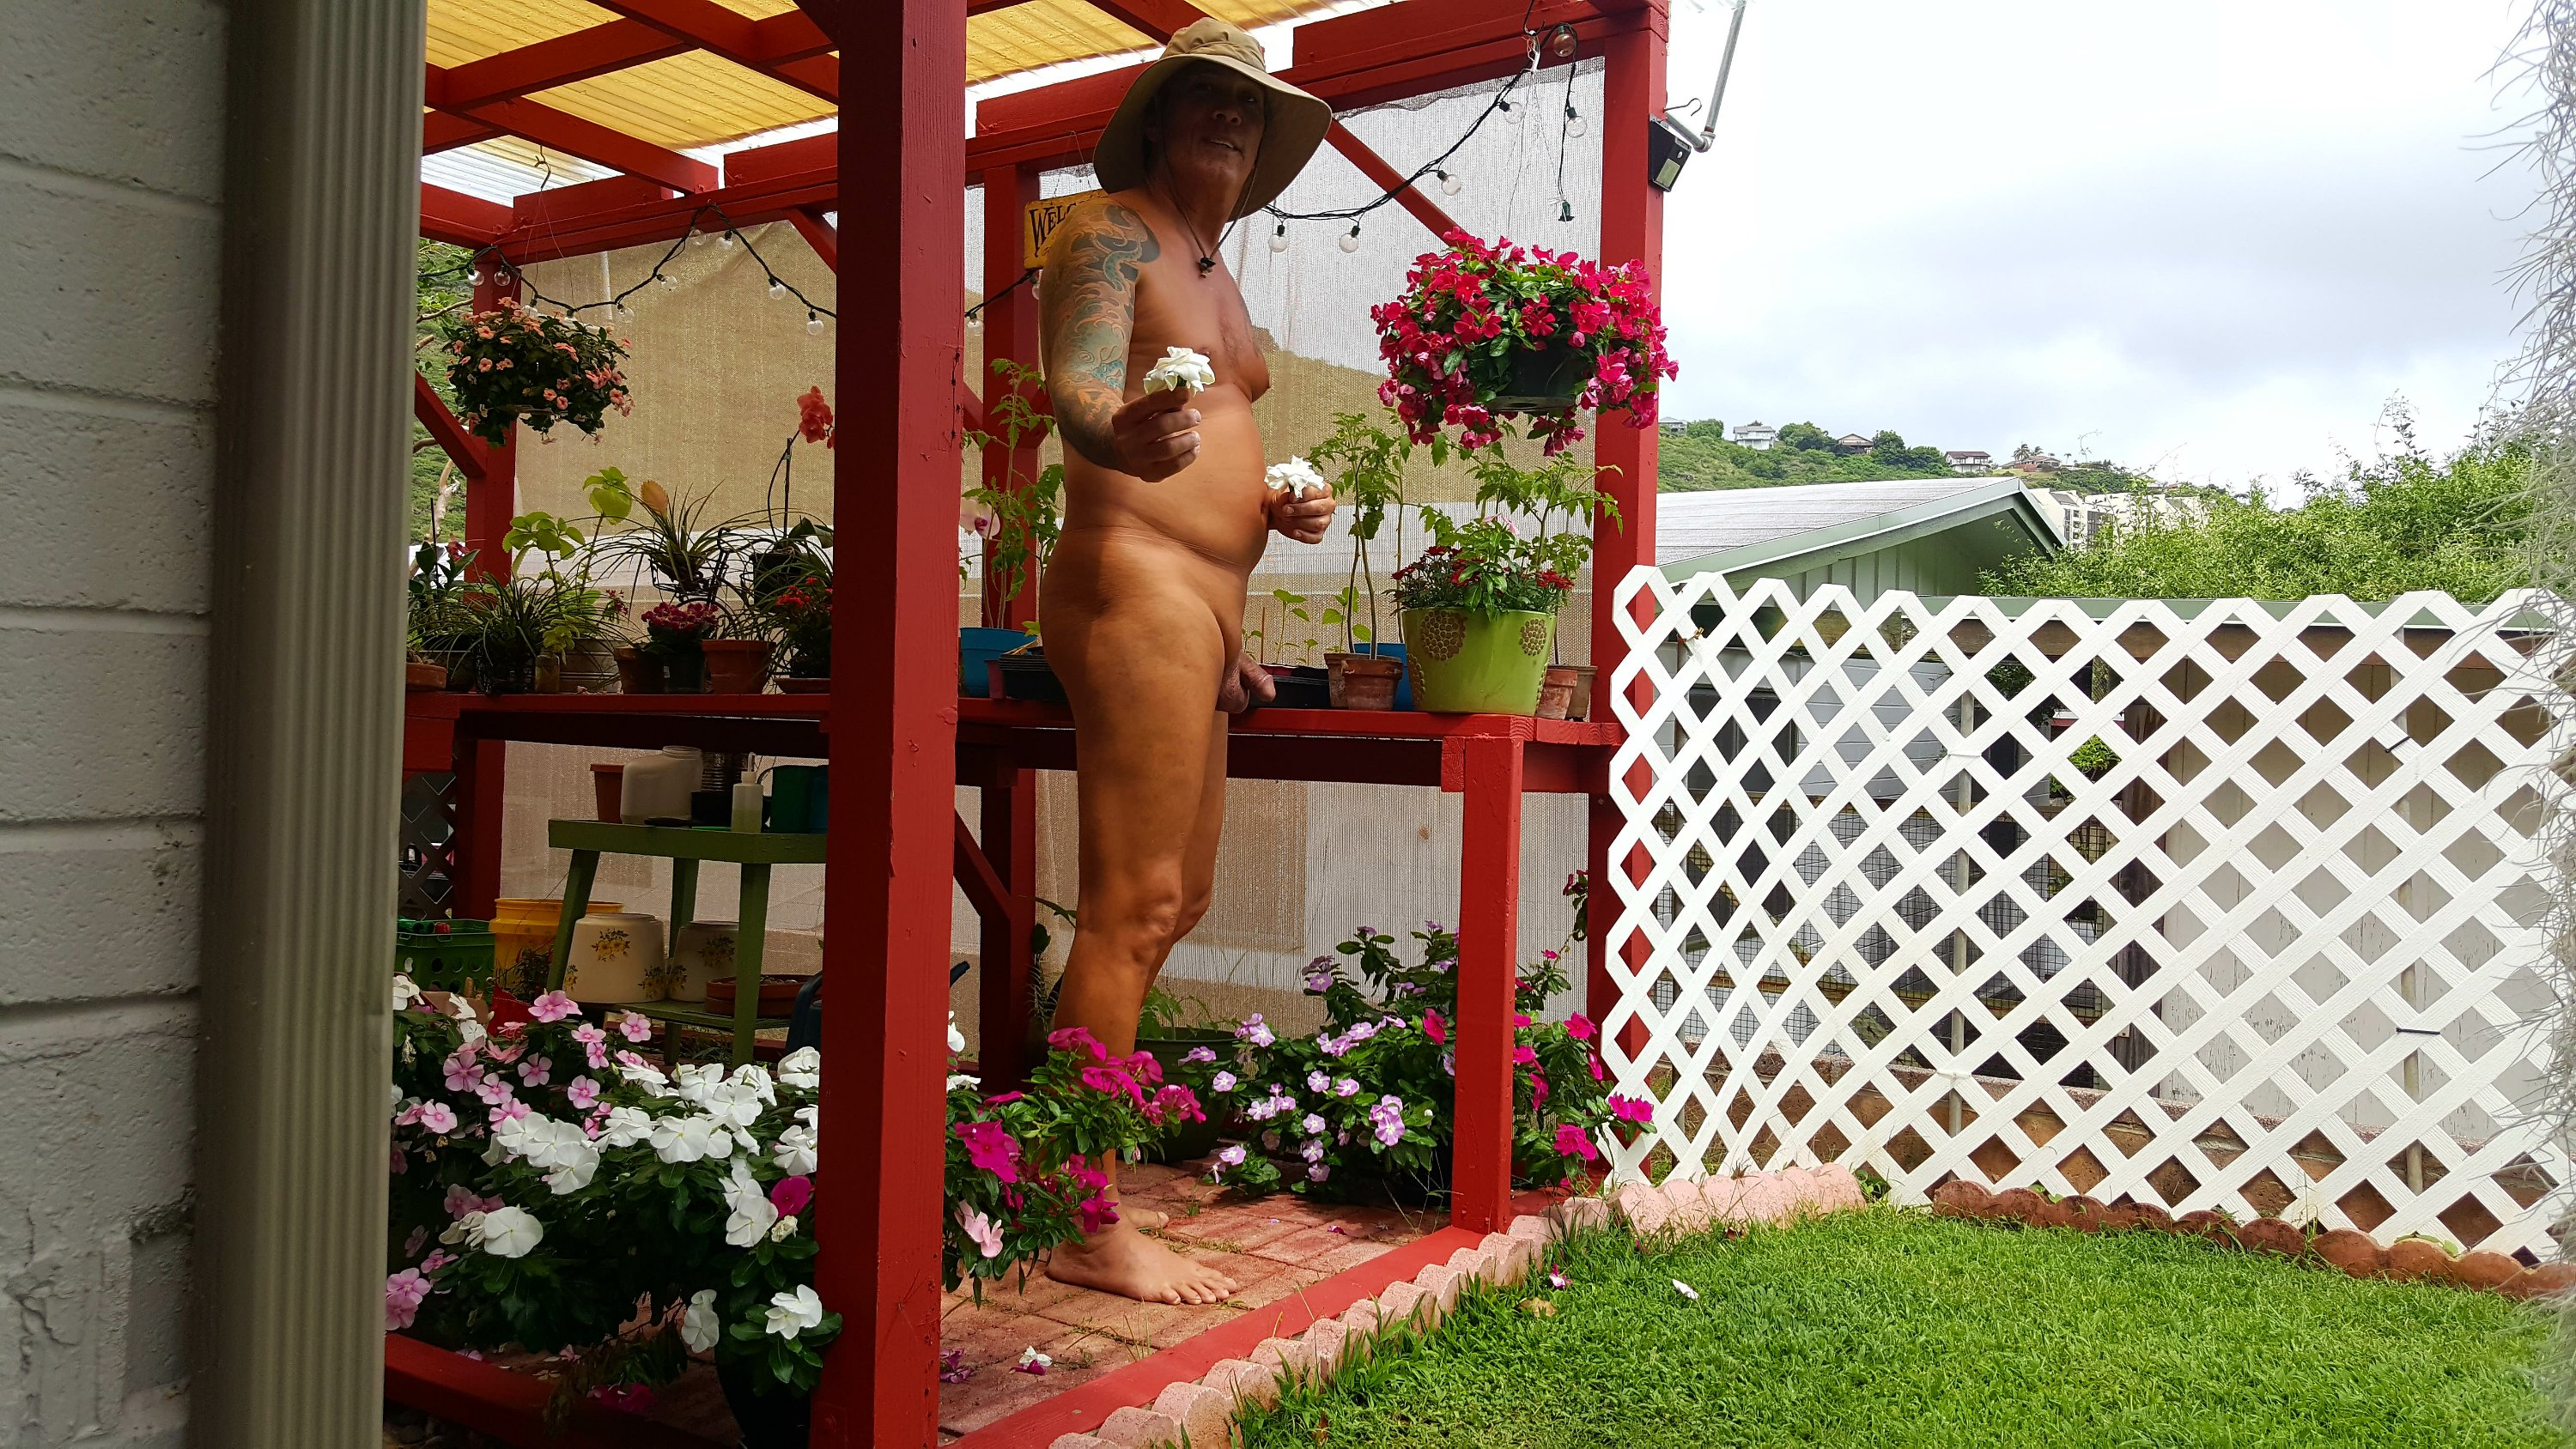 World Naked Gardening Day – The Paradise Nudist Chronicles